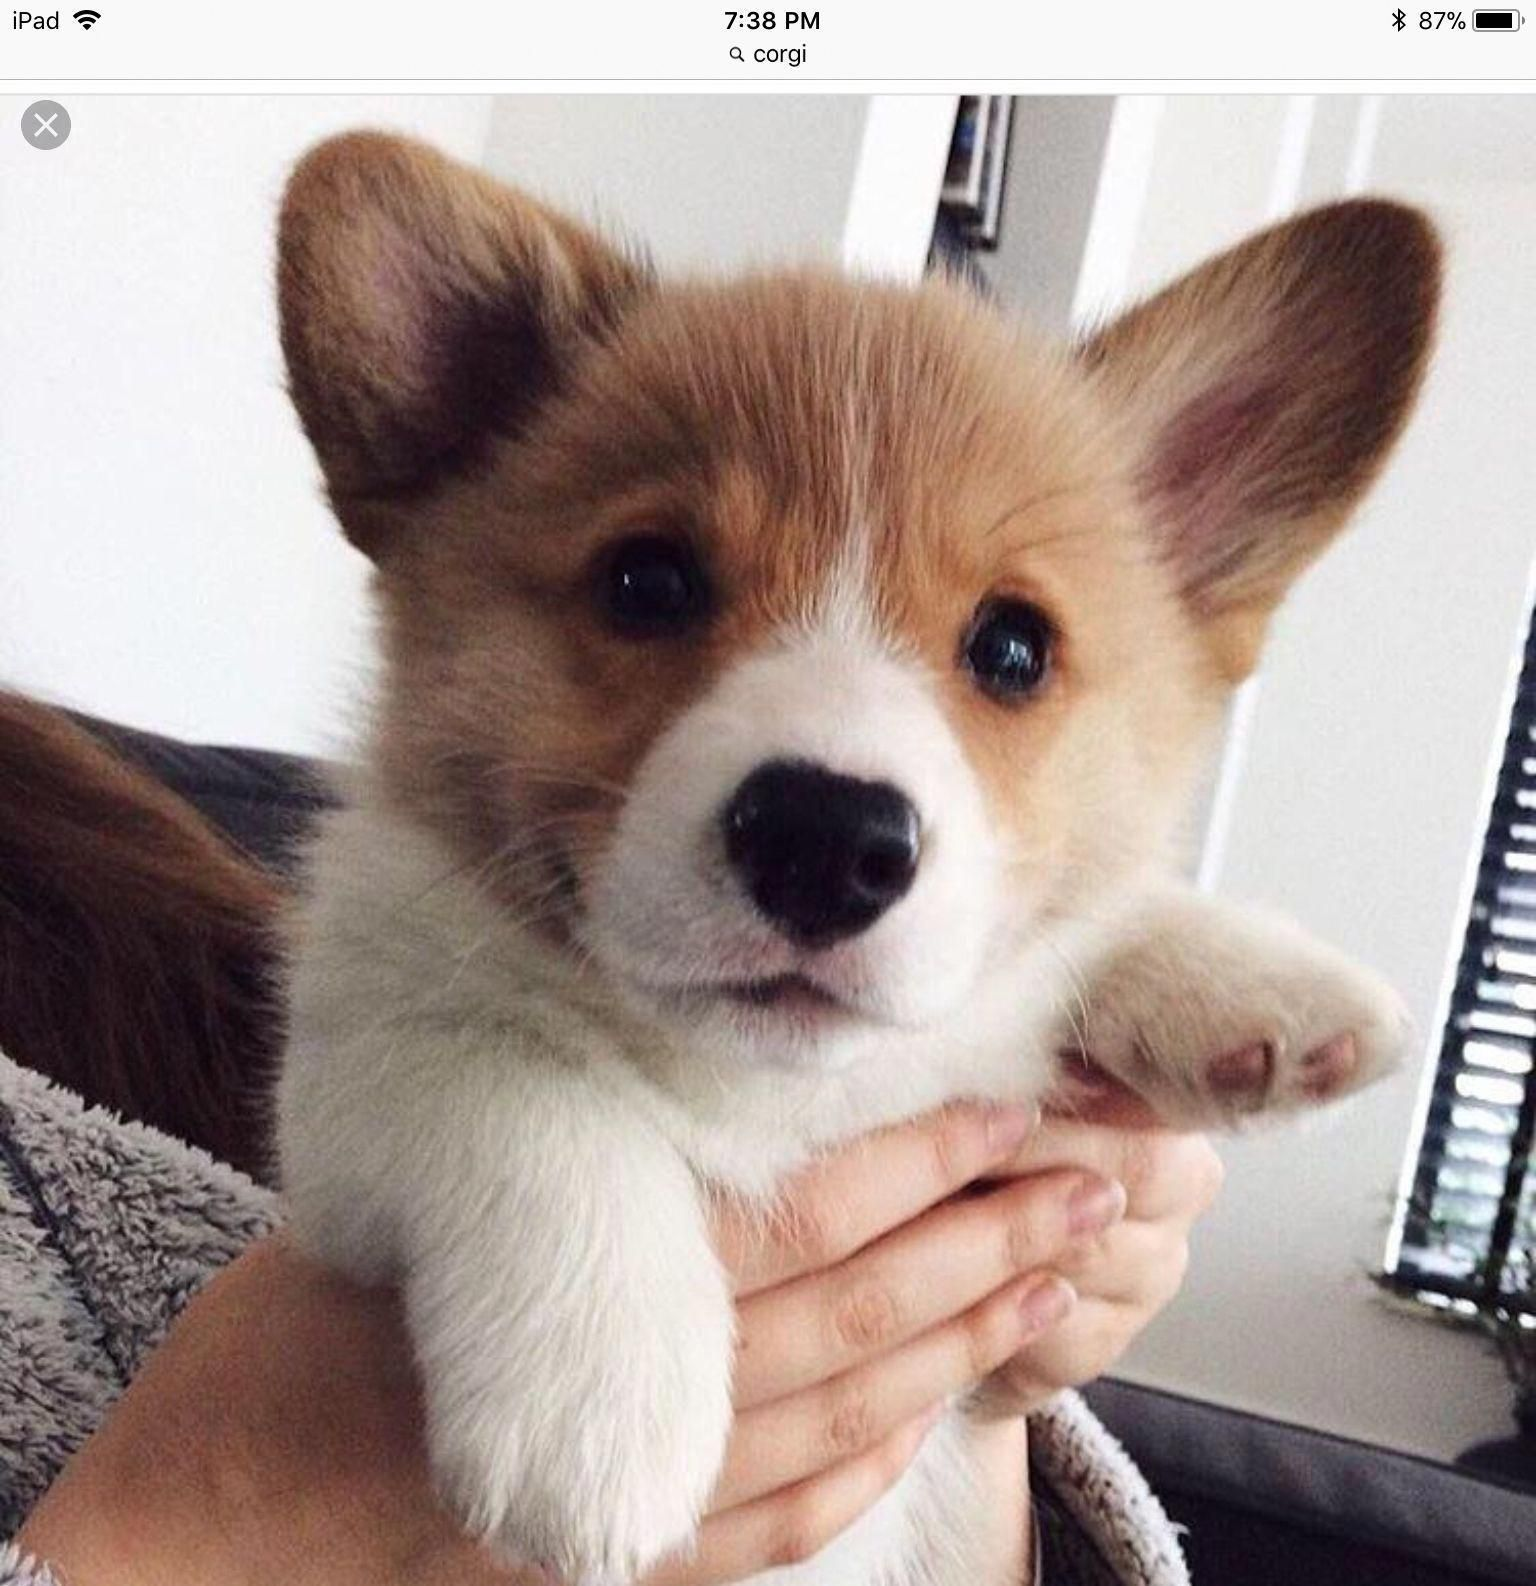 Pembroke Welsh Corgi Alert And Affectionate In 2020 Cute Baby Animals Cute Animals Cute Dog Pictures